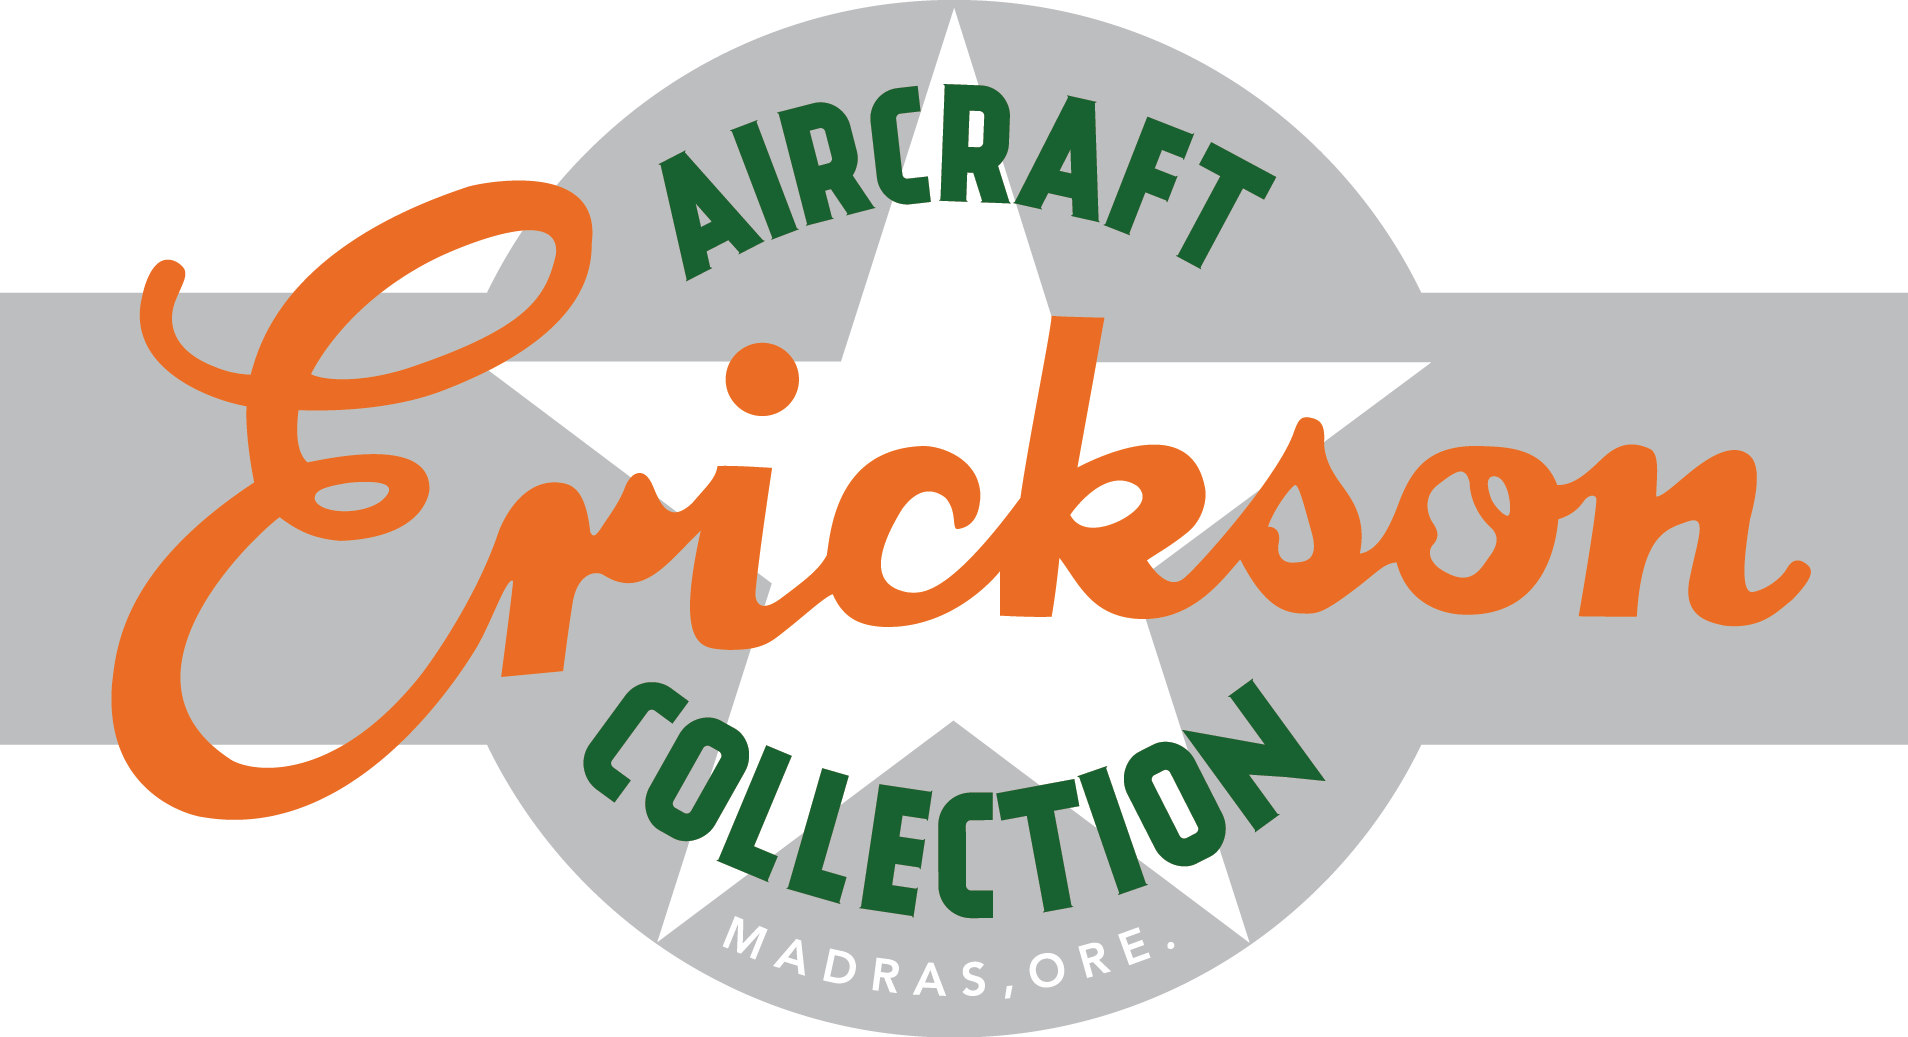 Erickson Aircraft Collection Magnet